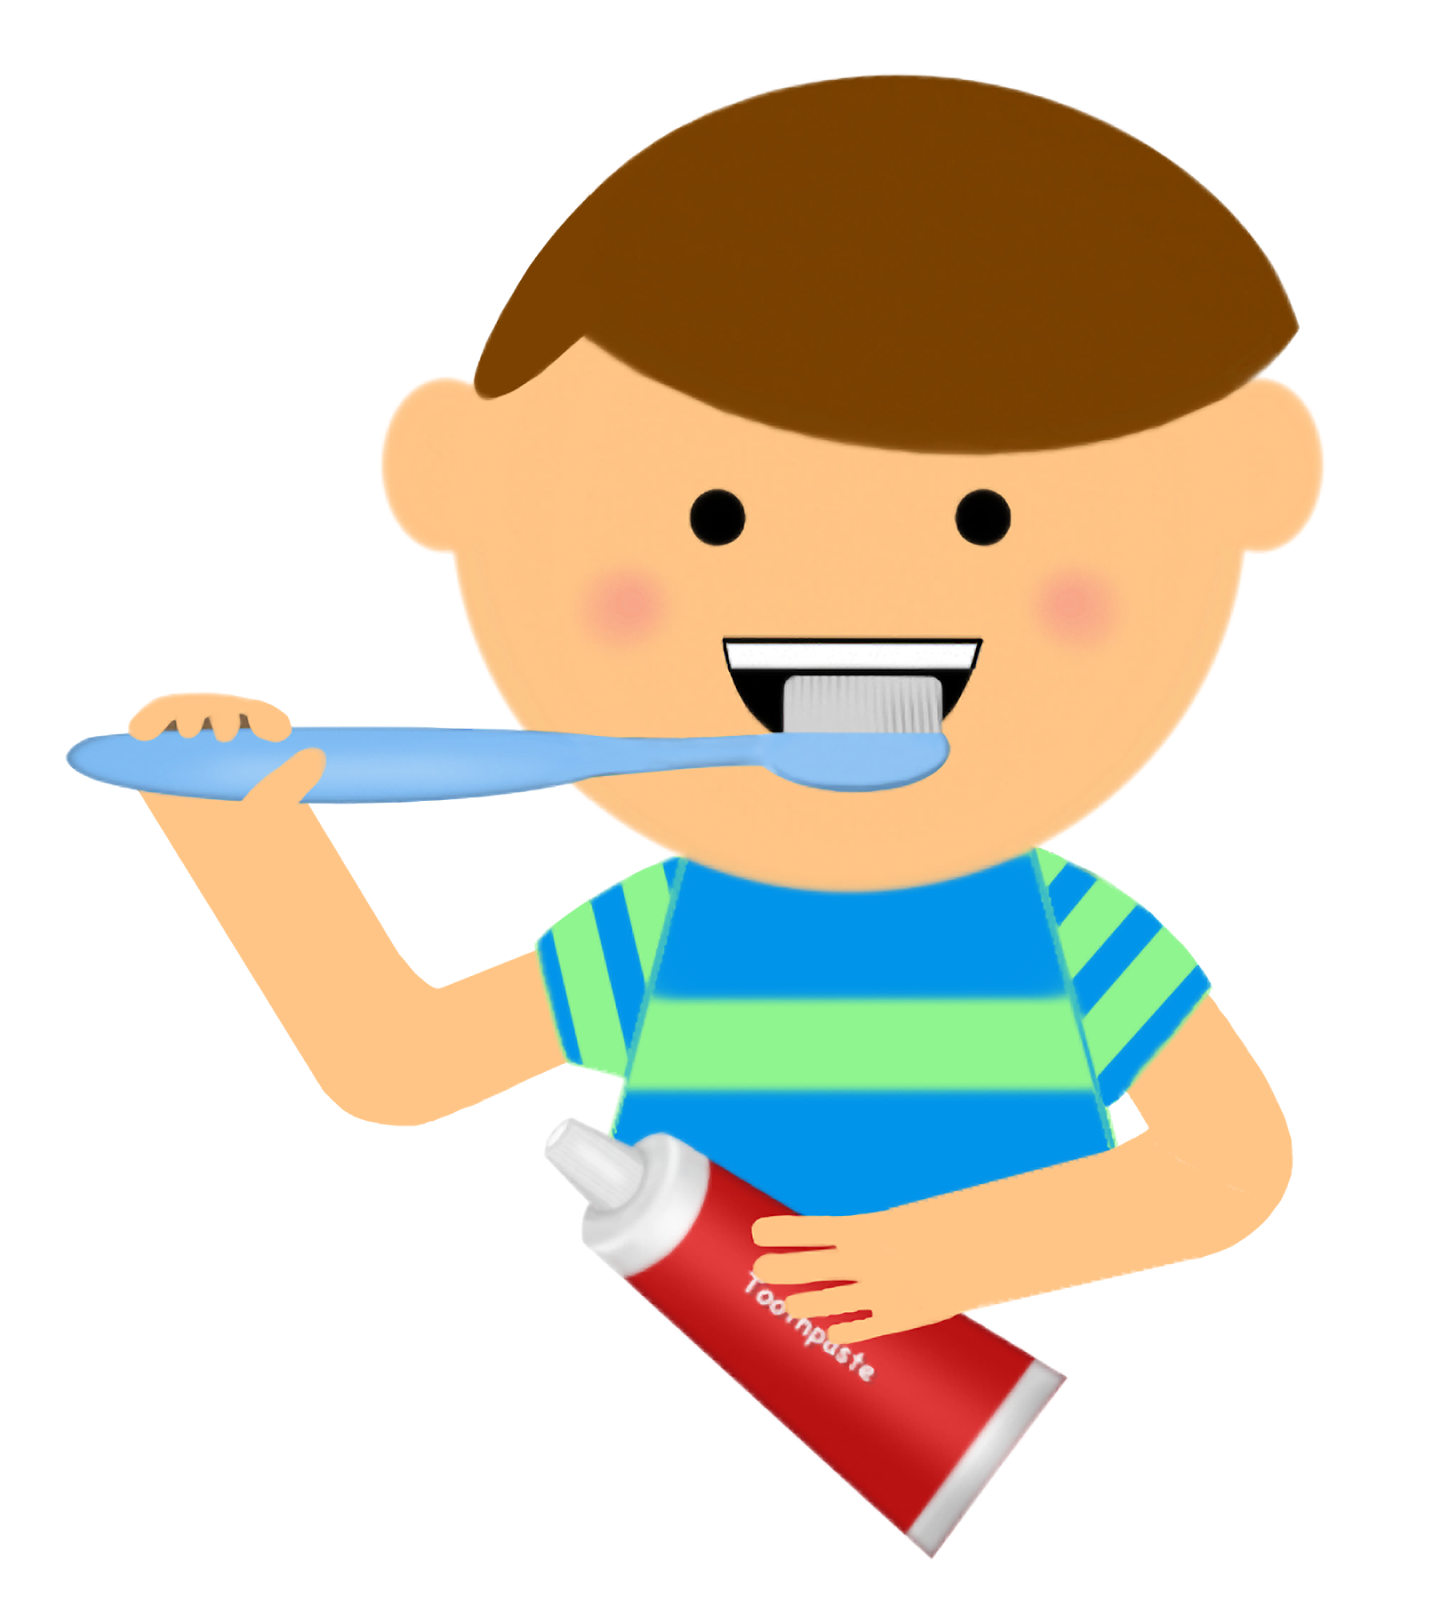 Hurt clipart tootache. Brushing teeth pictures cliparts